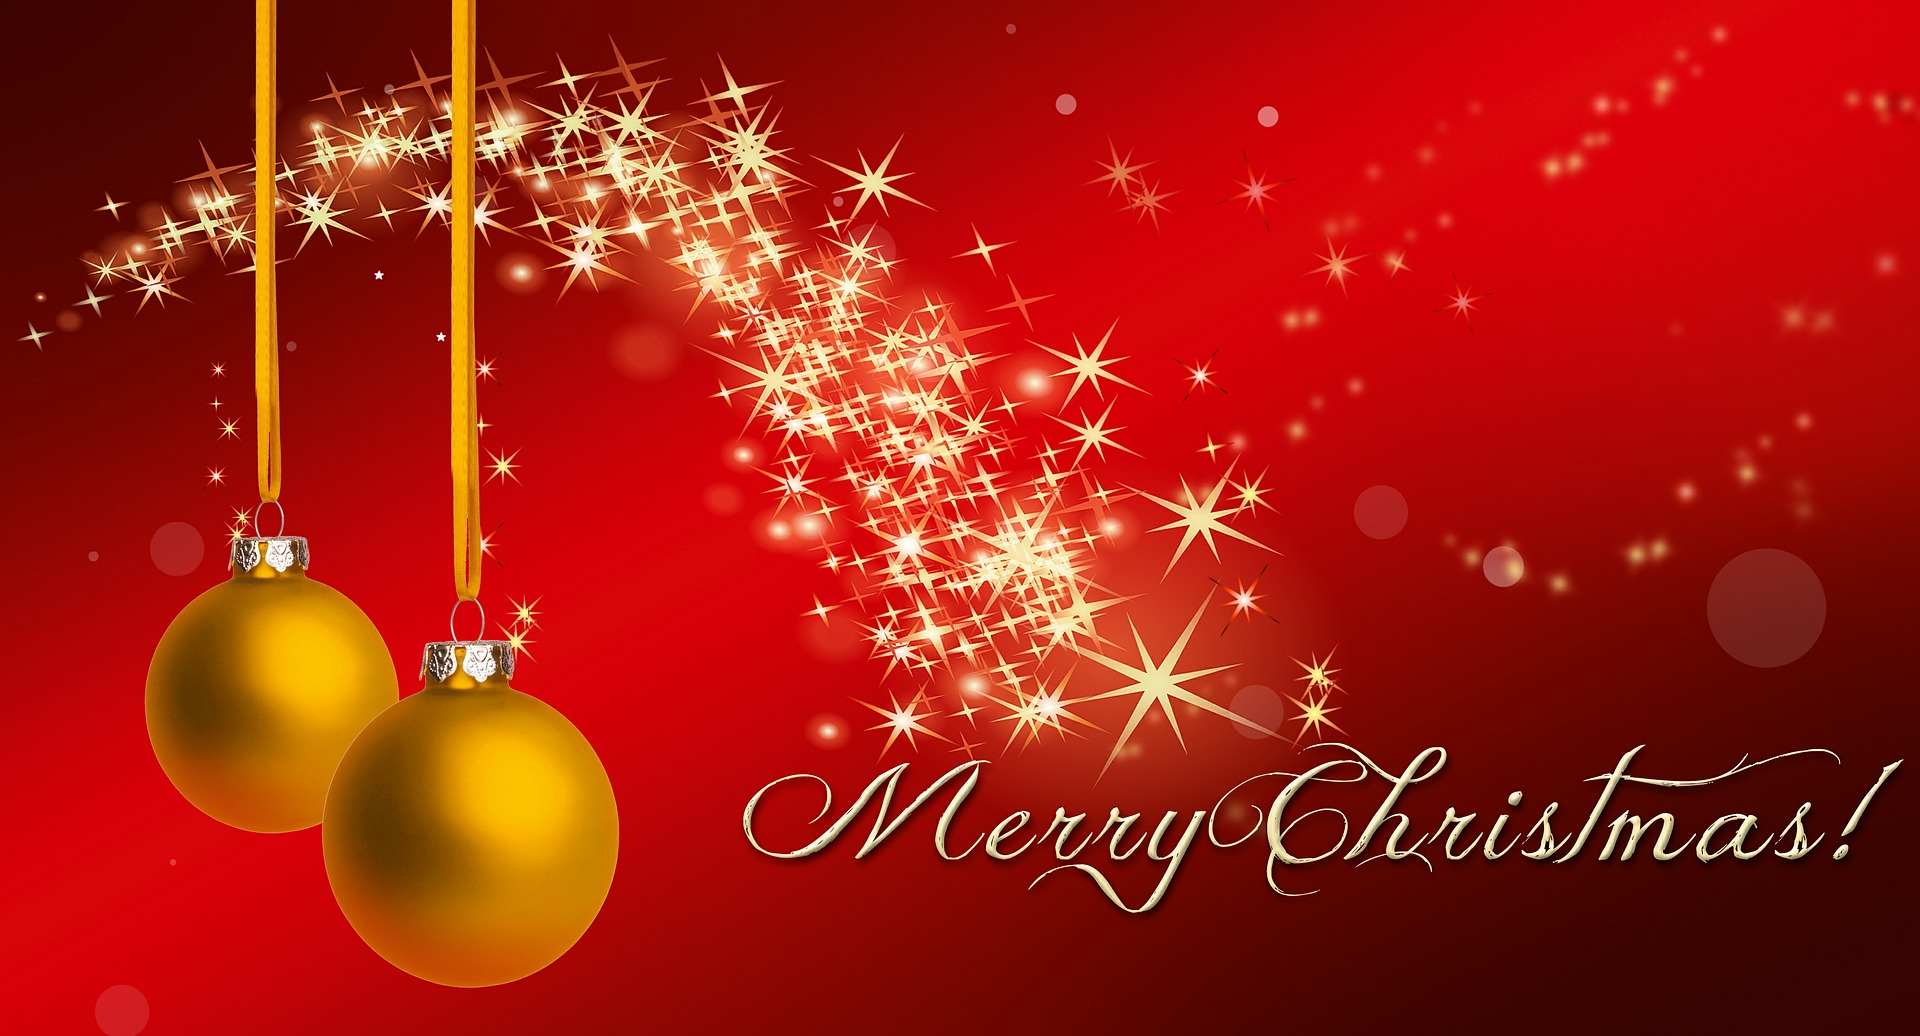 Merry Christmas from Bitsolver Limited